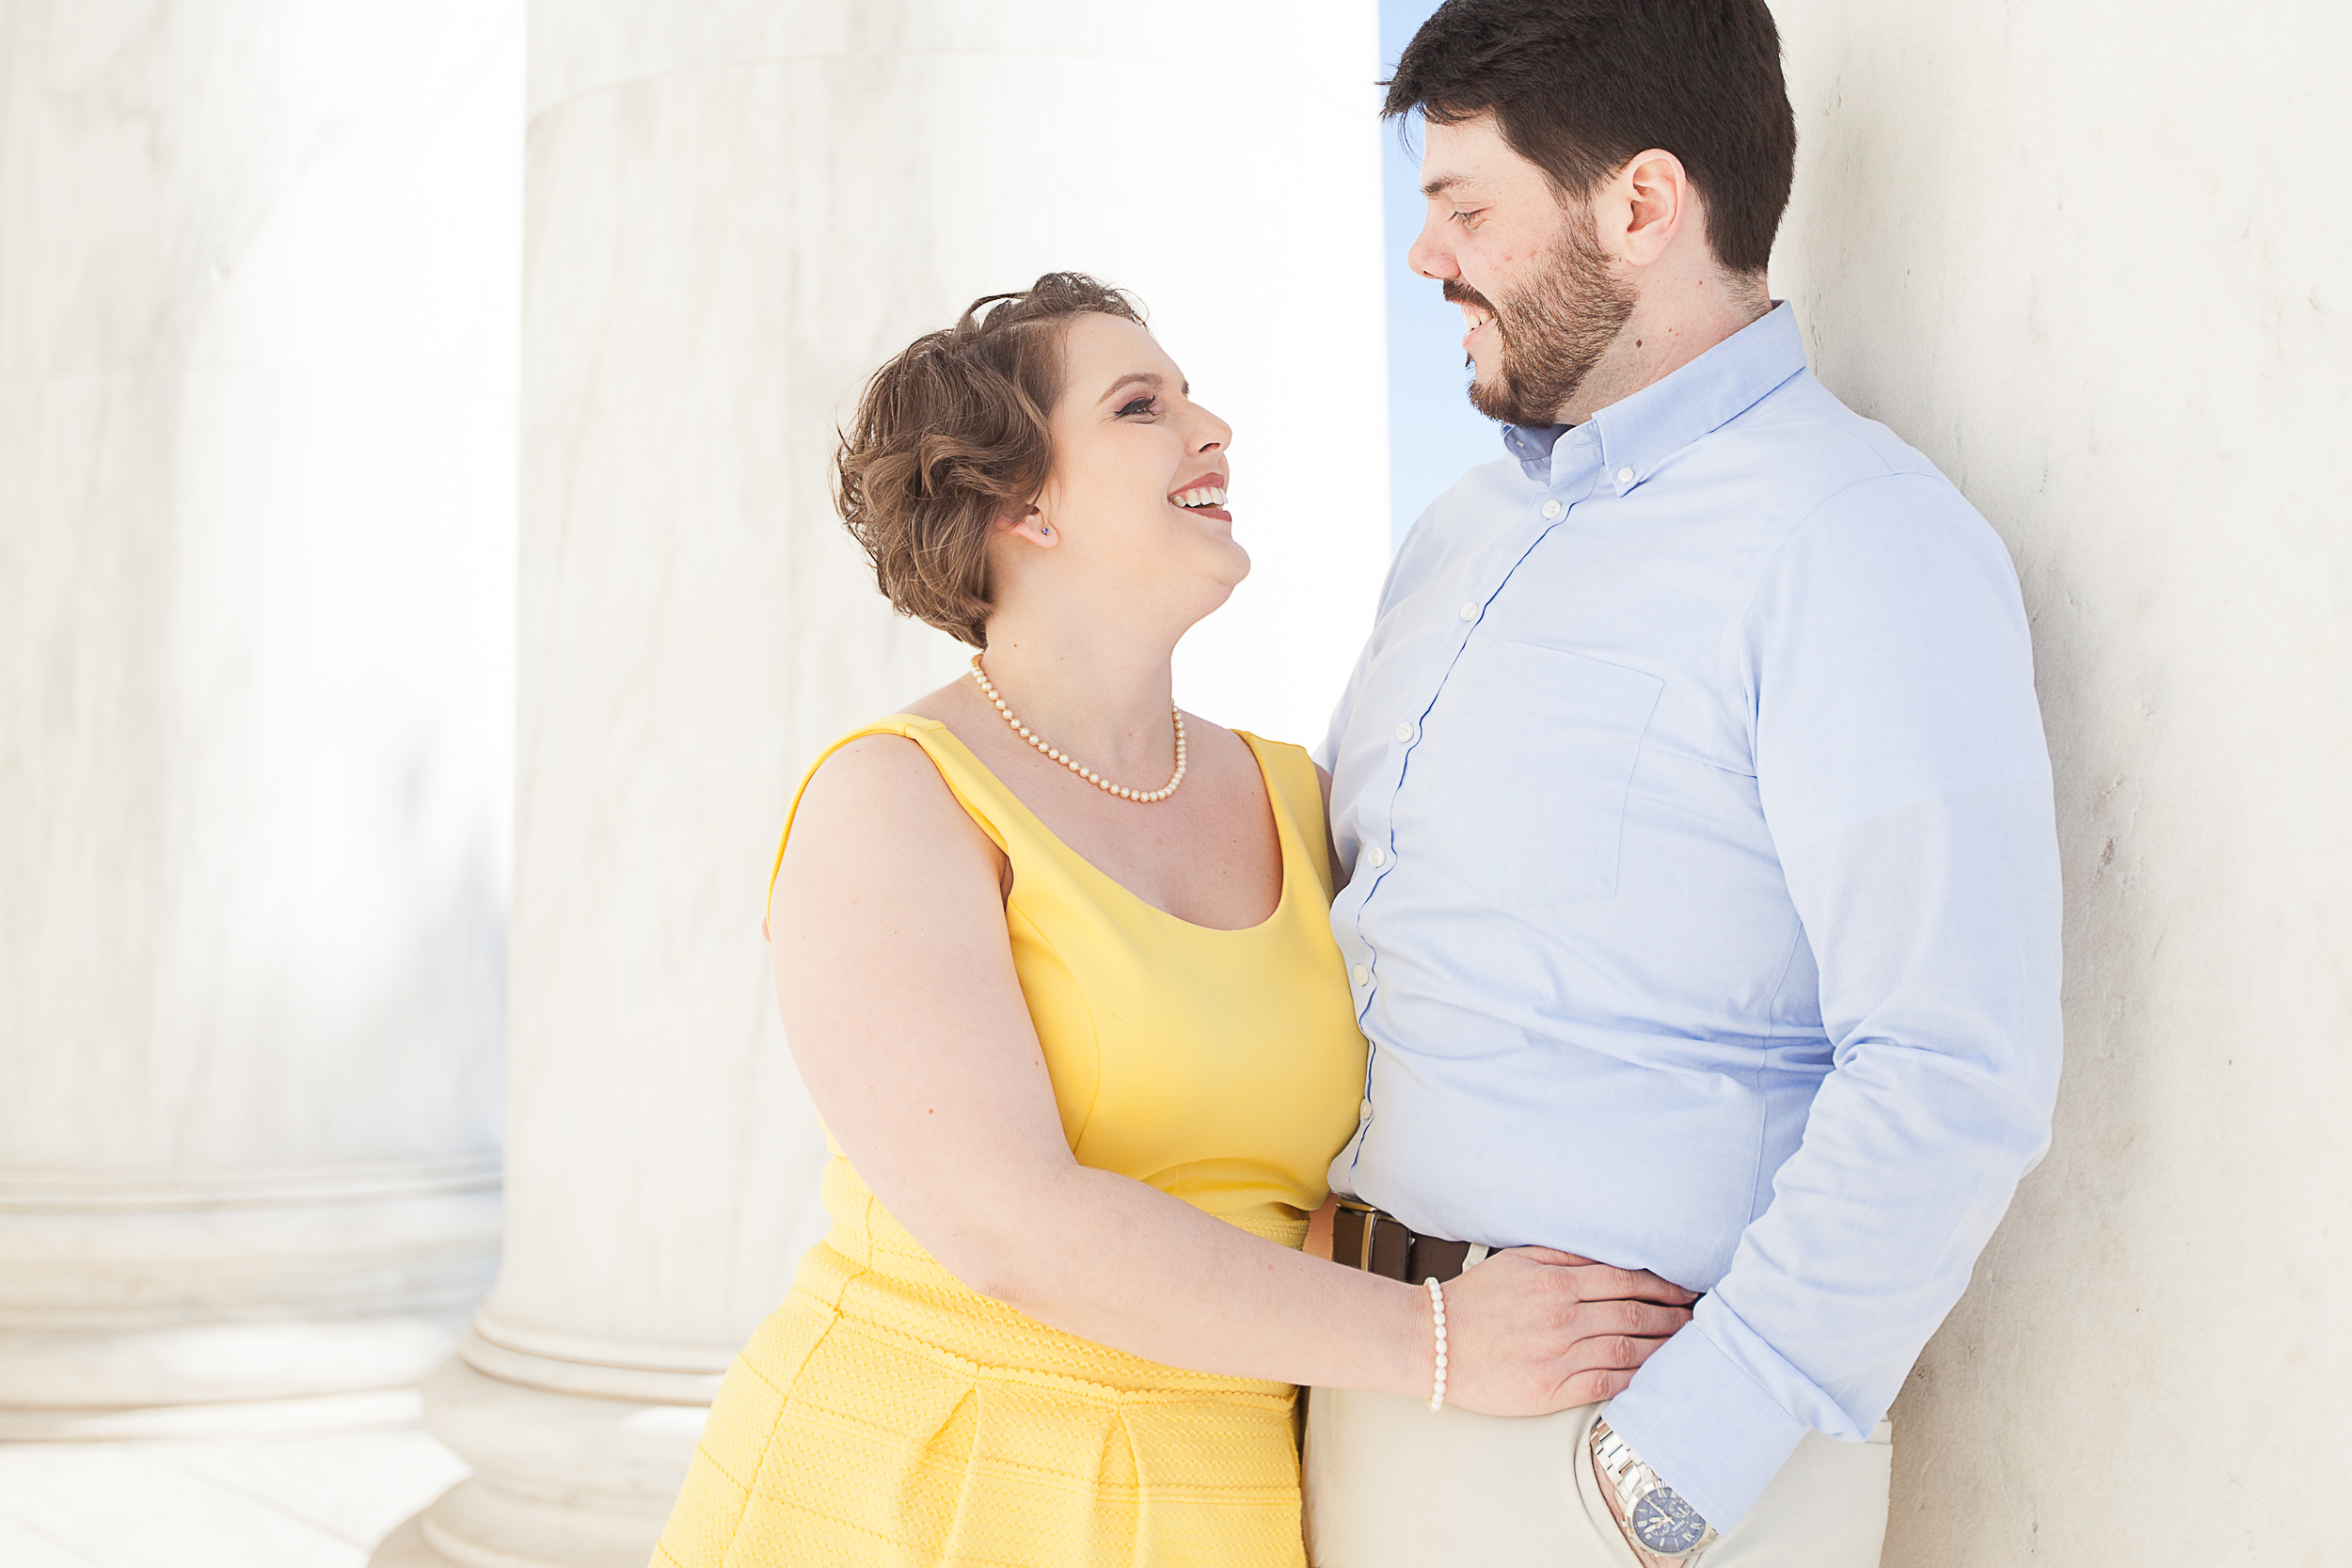 Kathryn-Stephen-Engagement-Kim-Pham-Clark-Photography-01.jpg